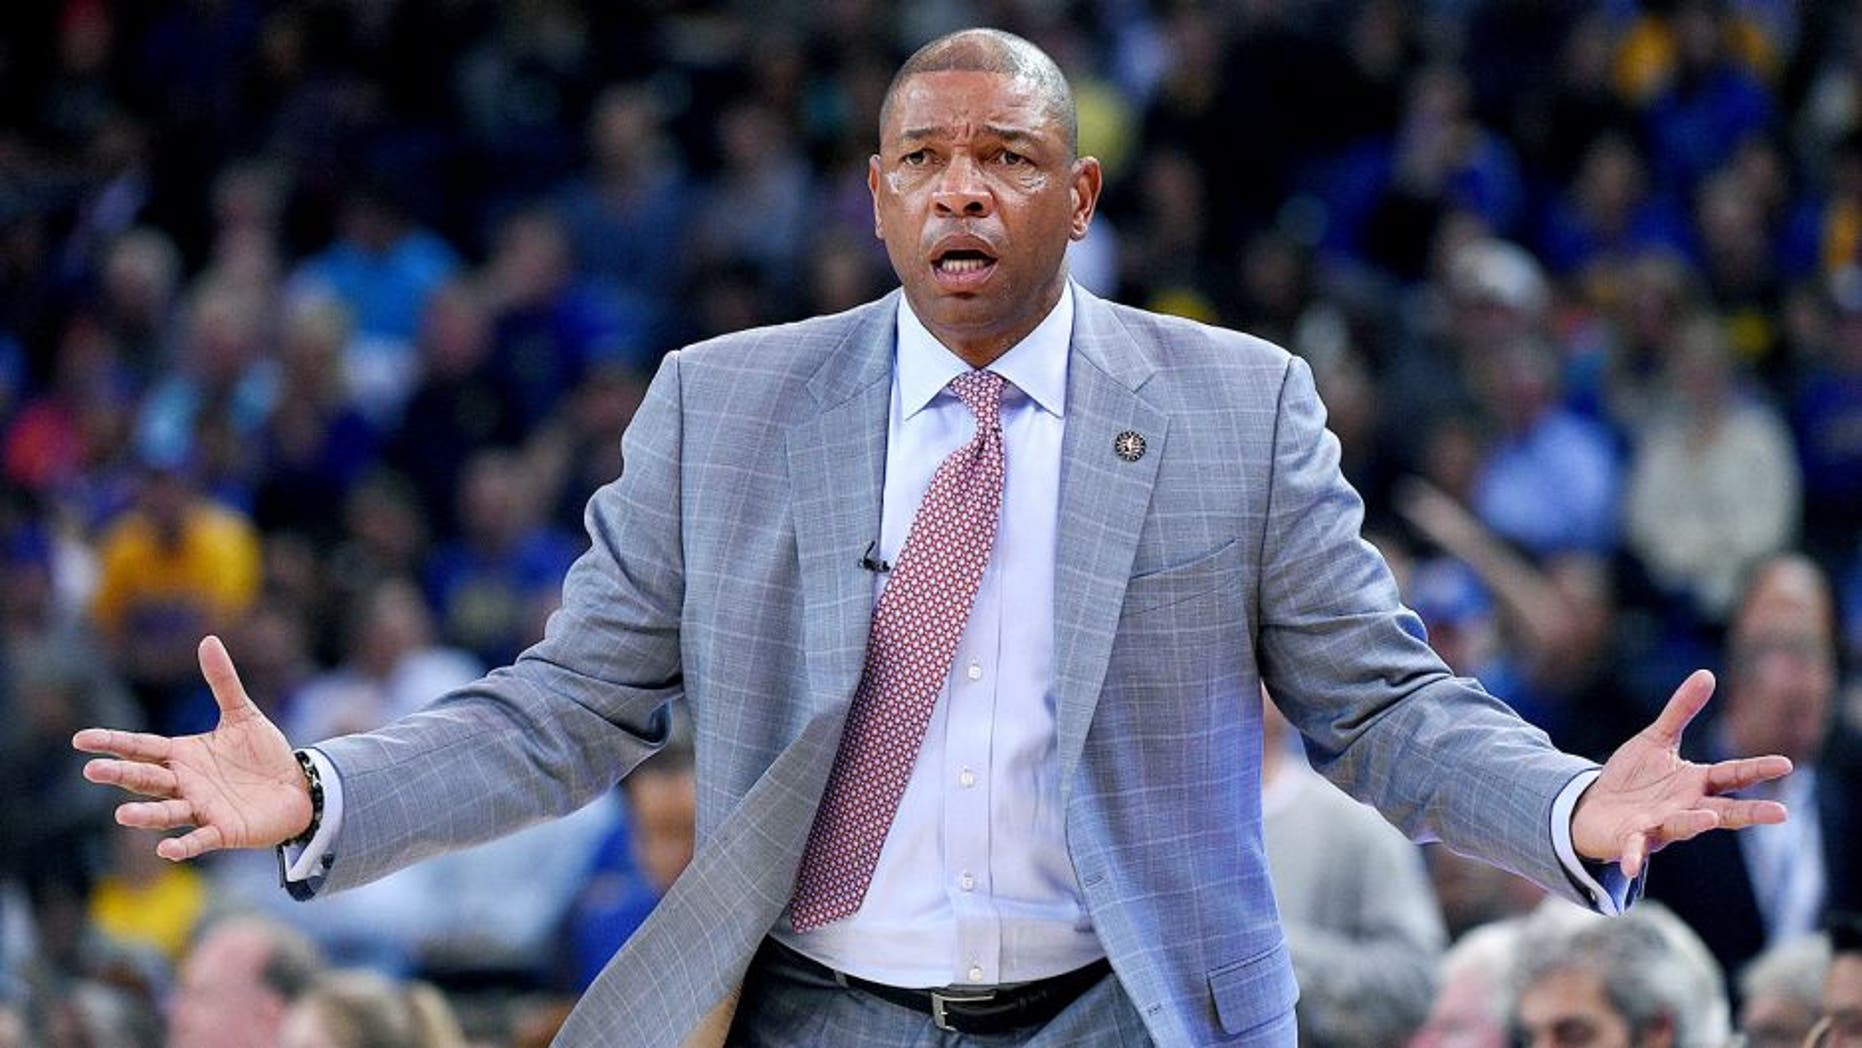 November 5, 2014; Oakland, CA, USA; Los Angeles Clippers head coach Doc Rivers reacts against the Golden State Warriors during the fourth quarter at Oracle Arena. The Warriors defeated the Clippers 121-104. Mandatory Credit: Kyle Terada-USA TODAY Sports